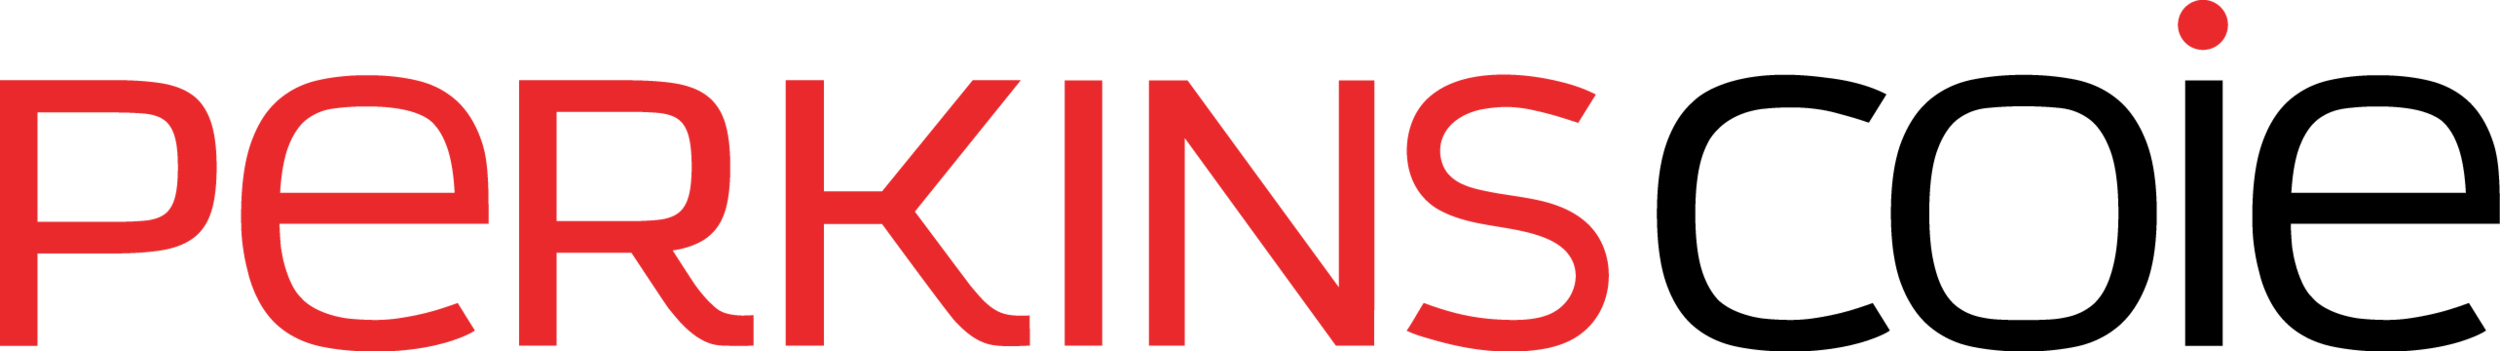 perkins-coie-red-logo.png